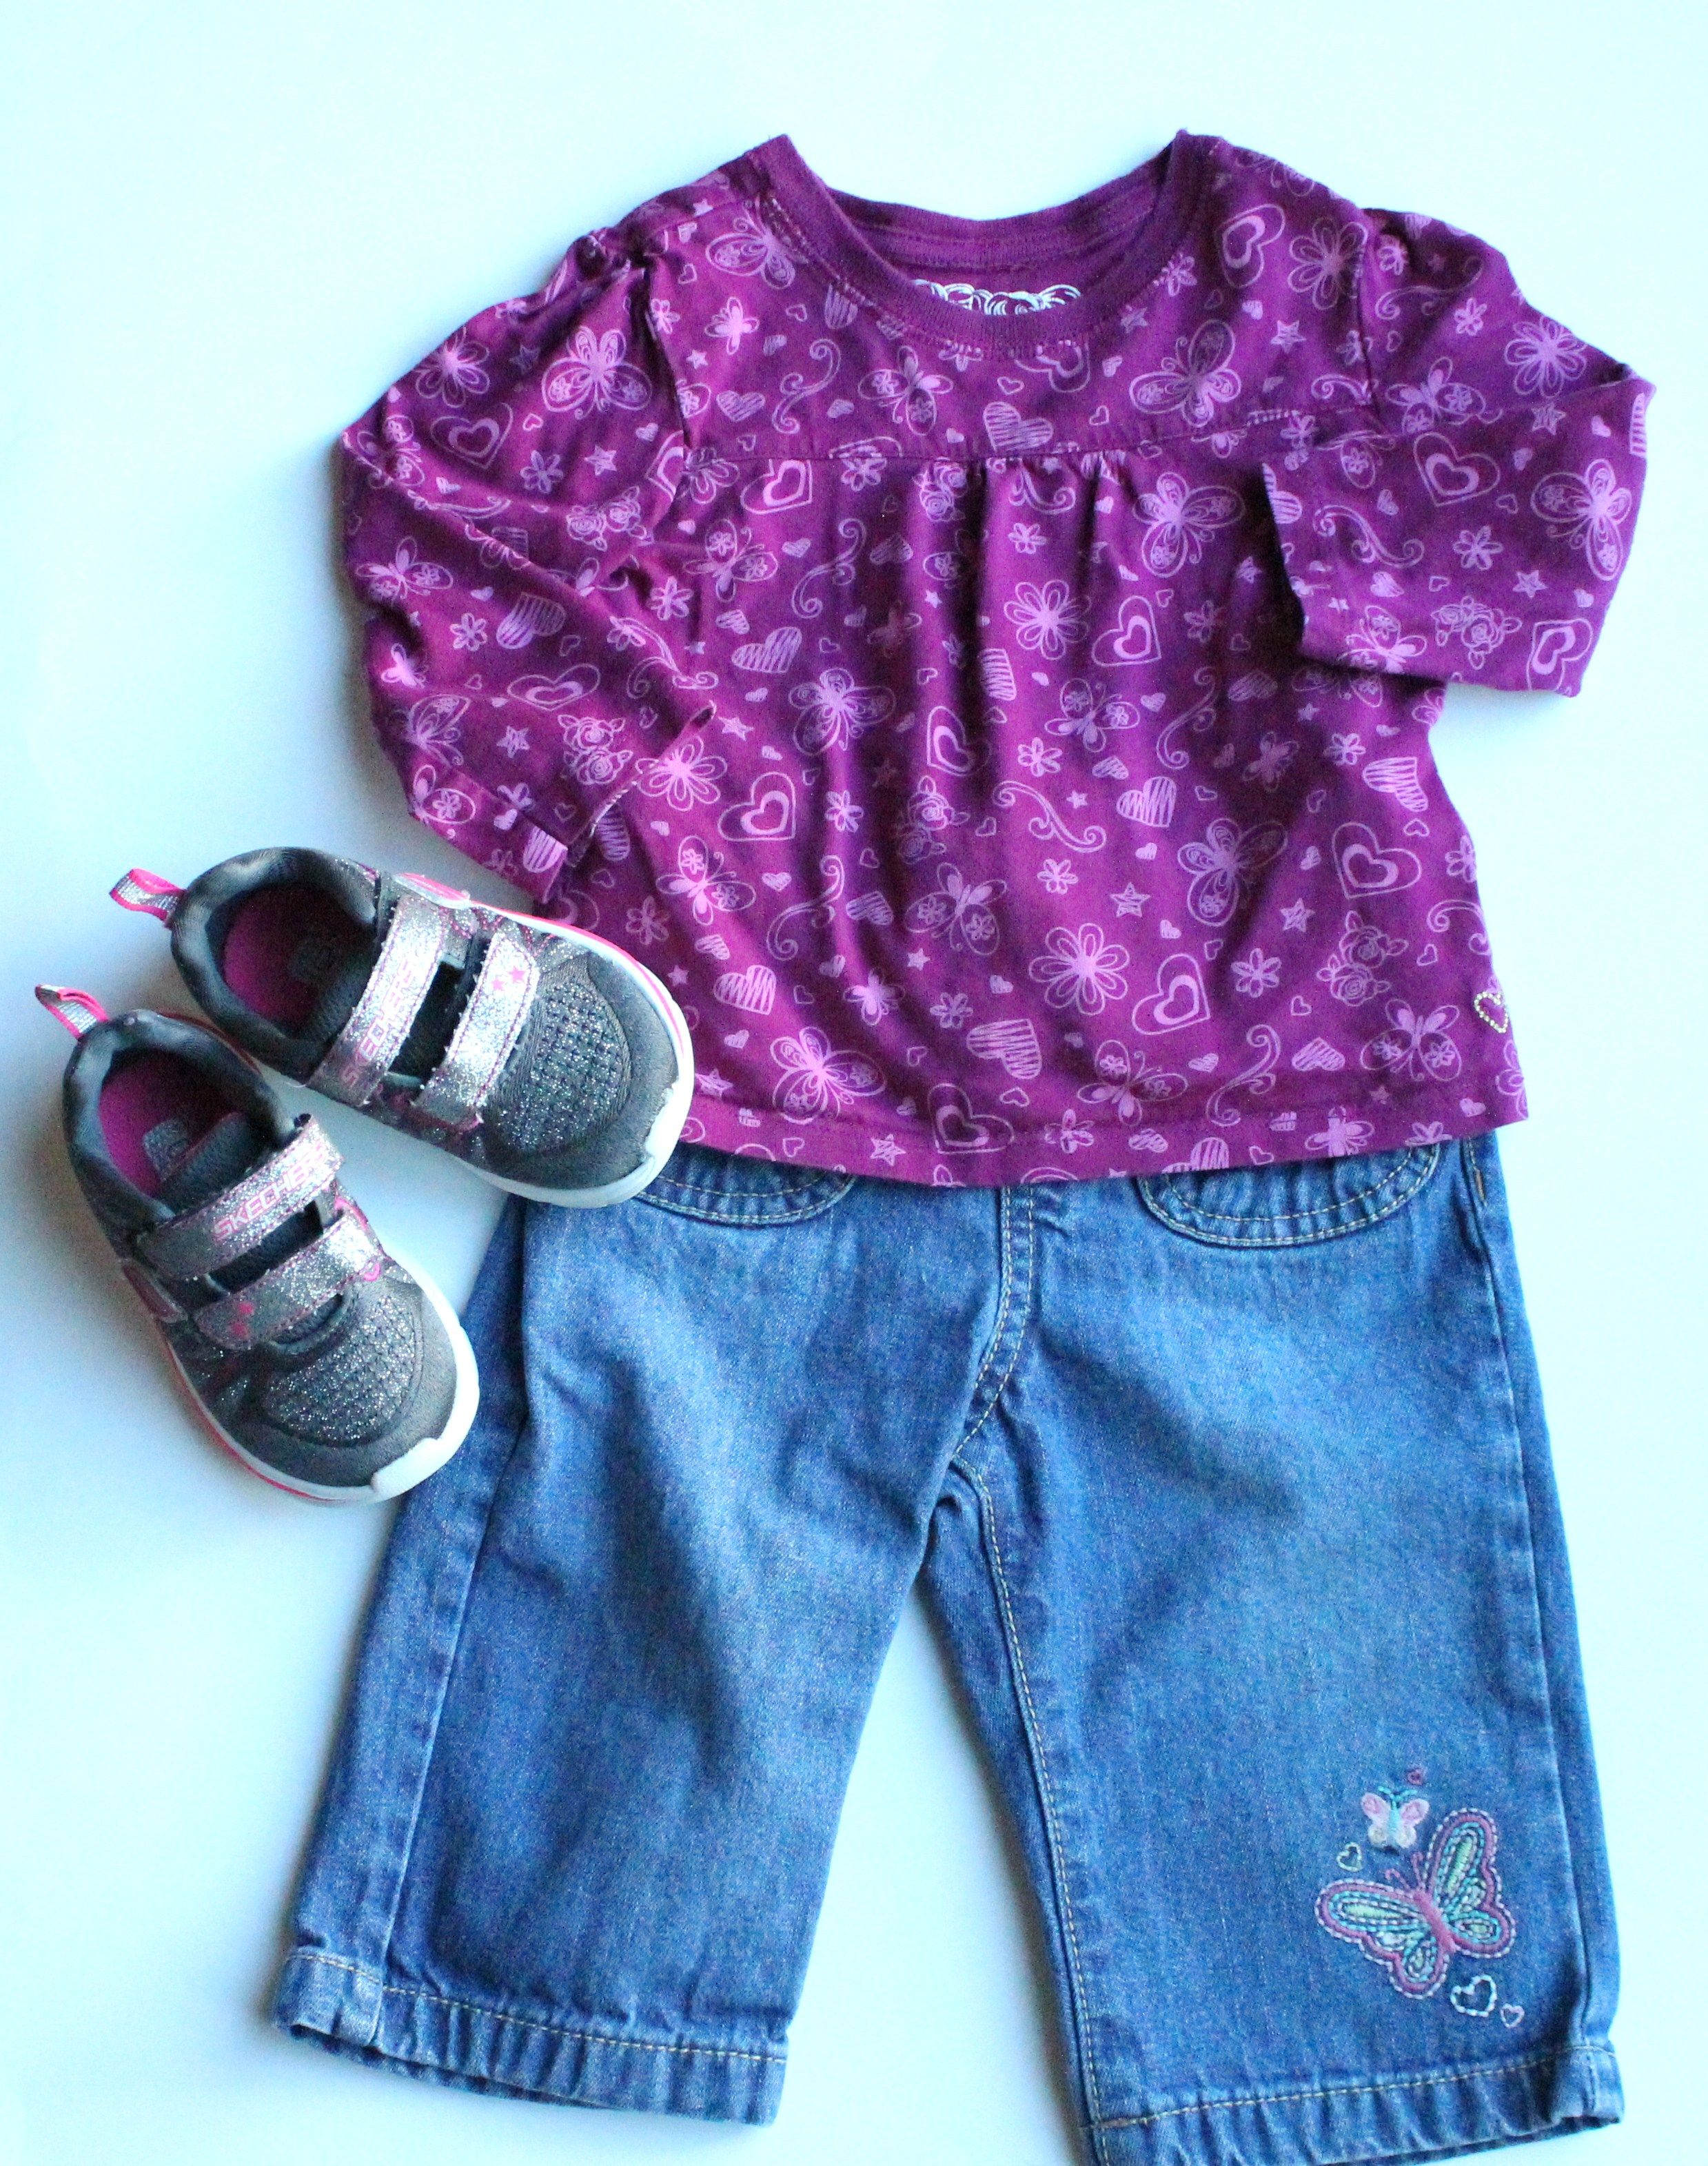 Osh Kosh Jeans Children S Place Top And Skechers Shoes All Items